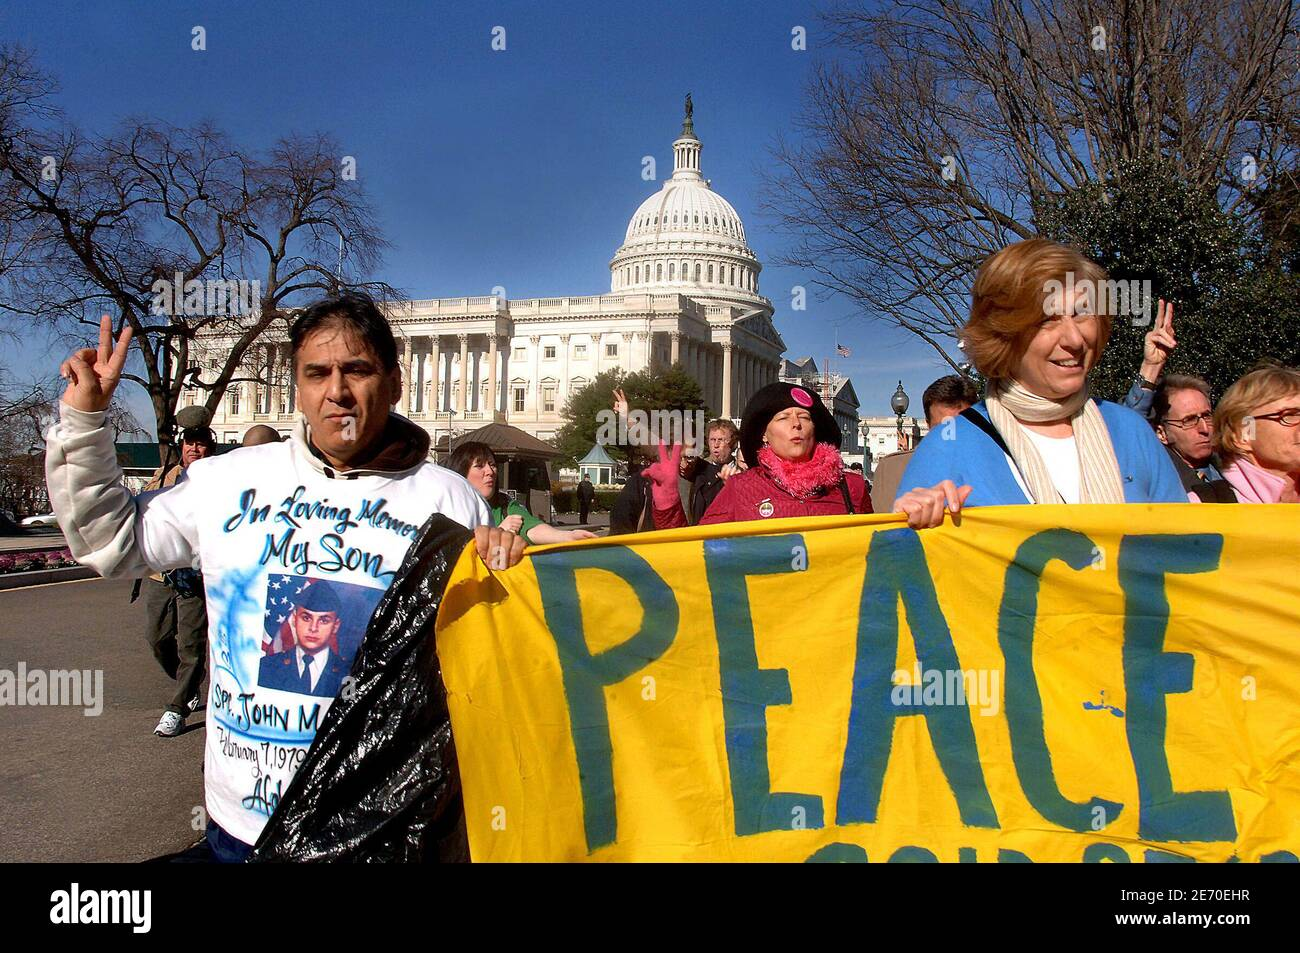 Iraq war protester Cindy Sheehan and members of Gold Star Families for Peace gathers in front of the Capitol to commemorate the 3,000th U.S. soldier killed in Iraq January 3, 2007 in Washington DC. The number of U.S. military deaths in Iraq has reportedly reached 3004 since the 2003 invasion began. Photo by Olivier Douliery/ABACAPRESS.COM Stock Photo